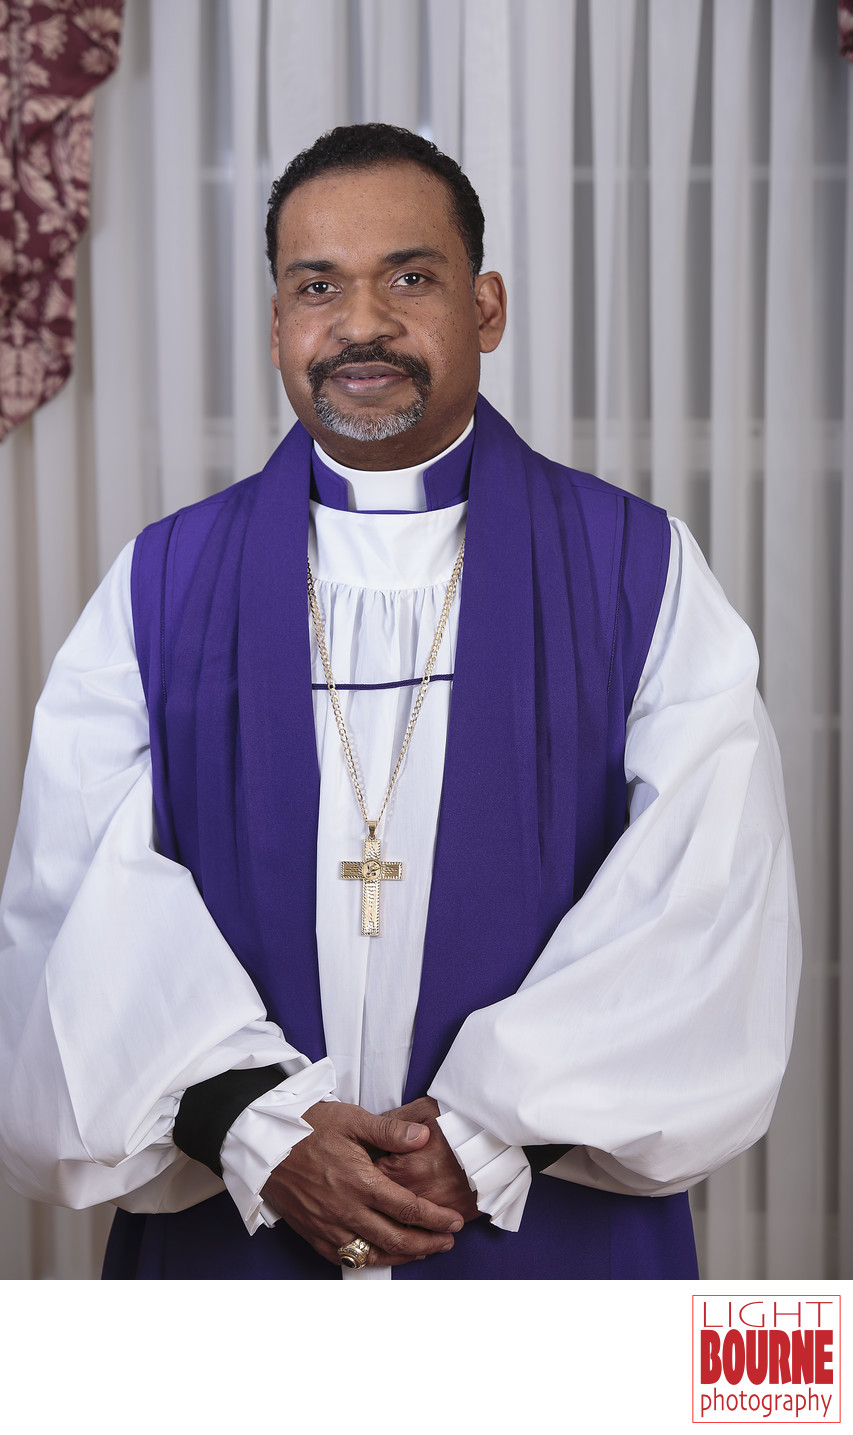 South Jersey Clergy Portraits